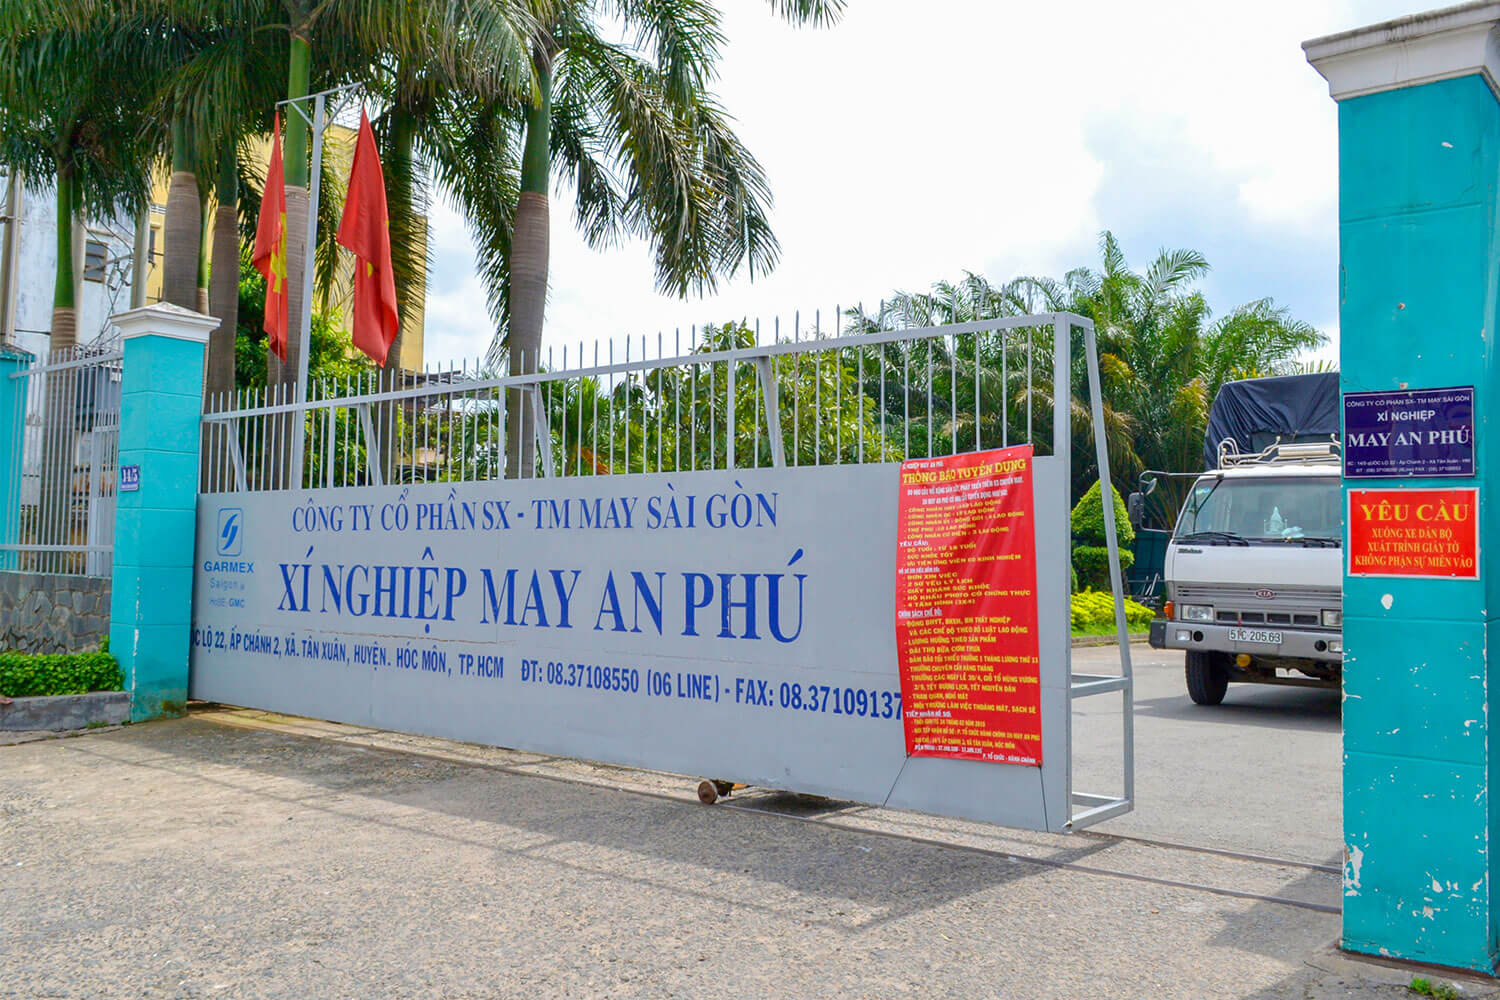 2. AN PHU GARMENT FACTORY